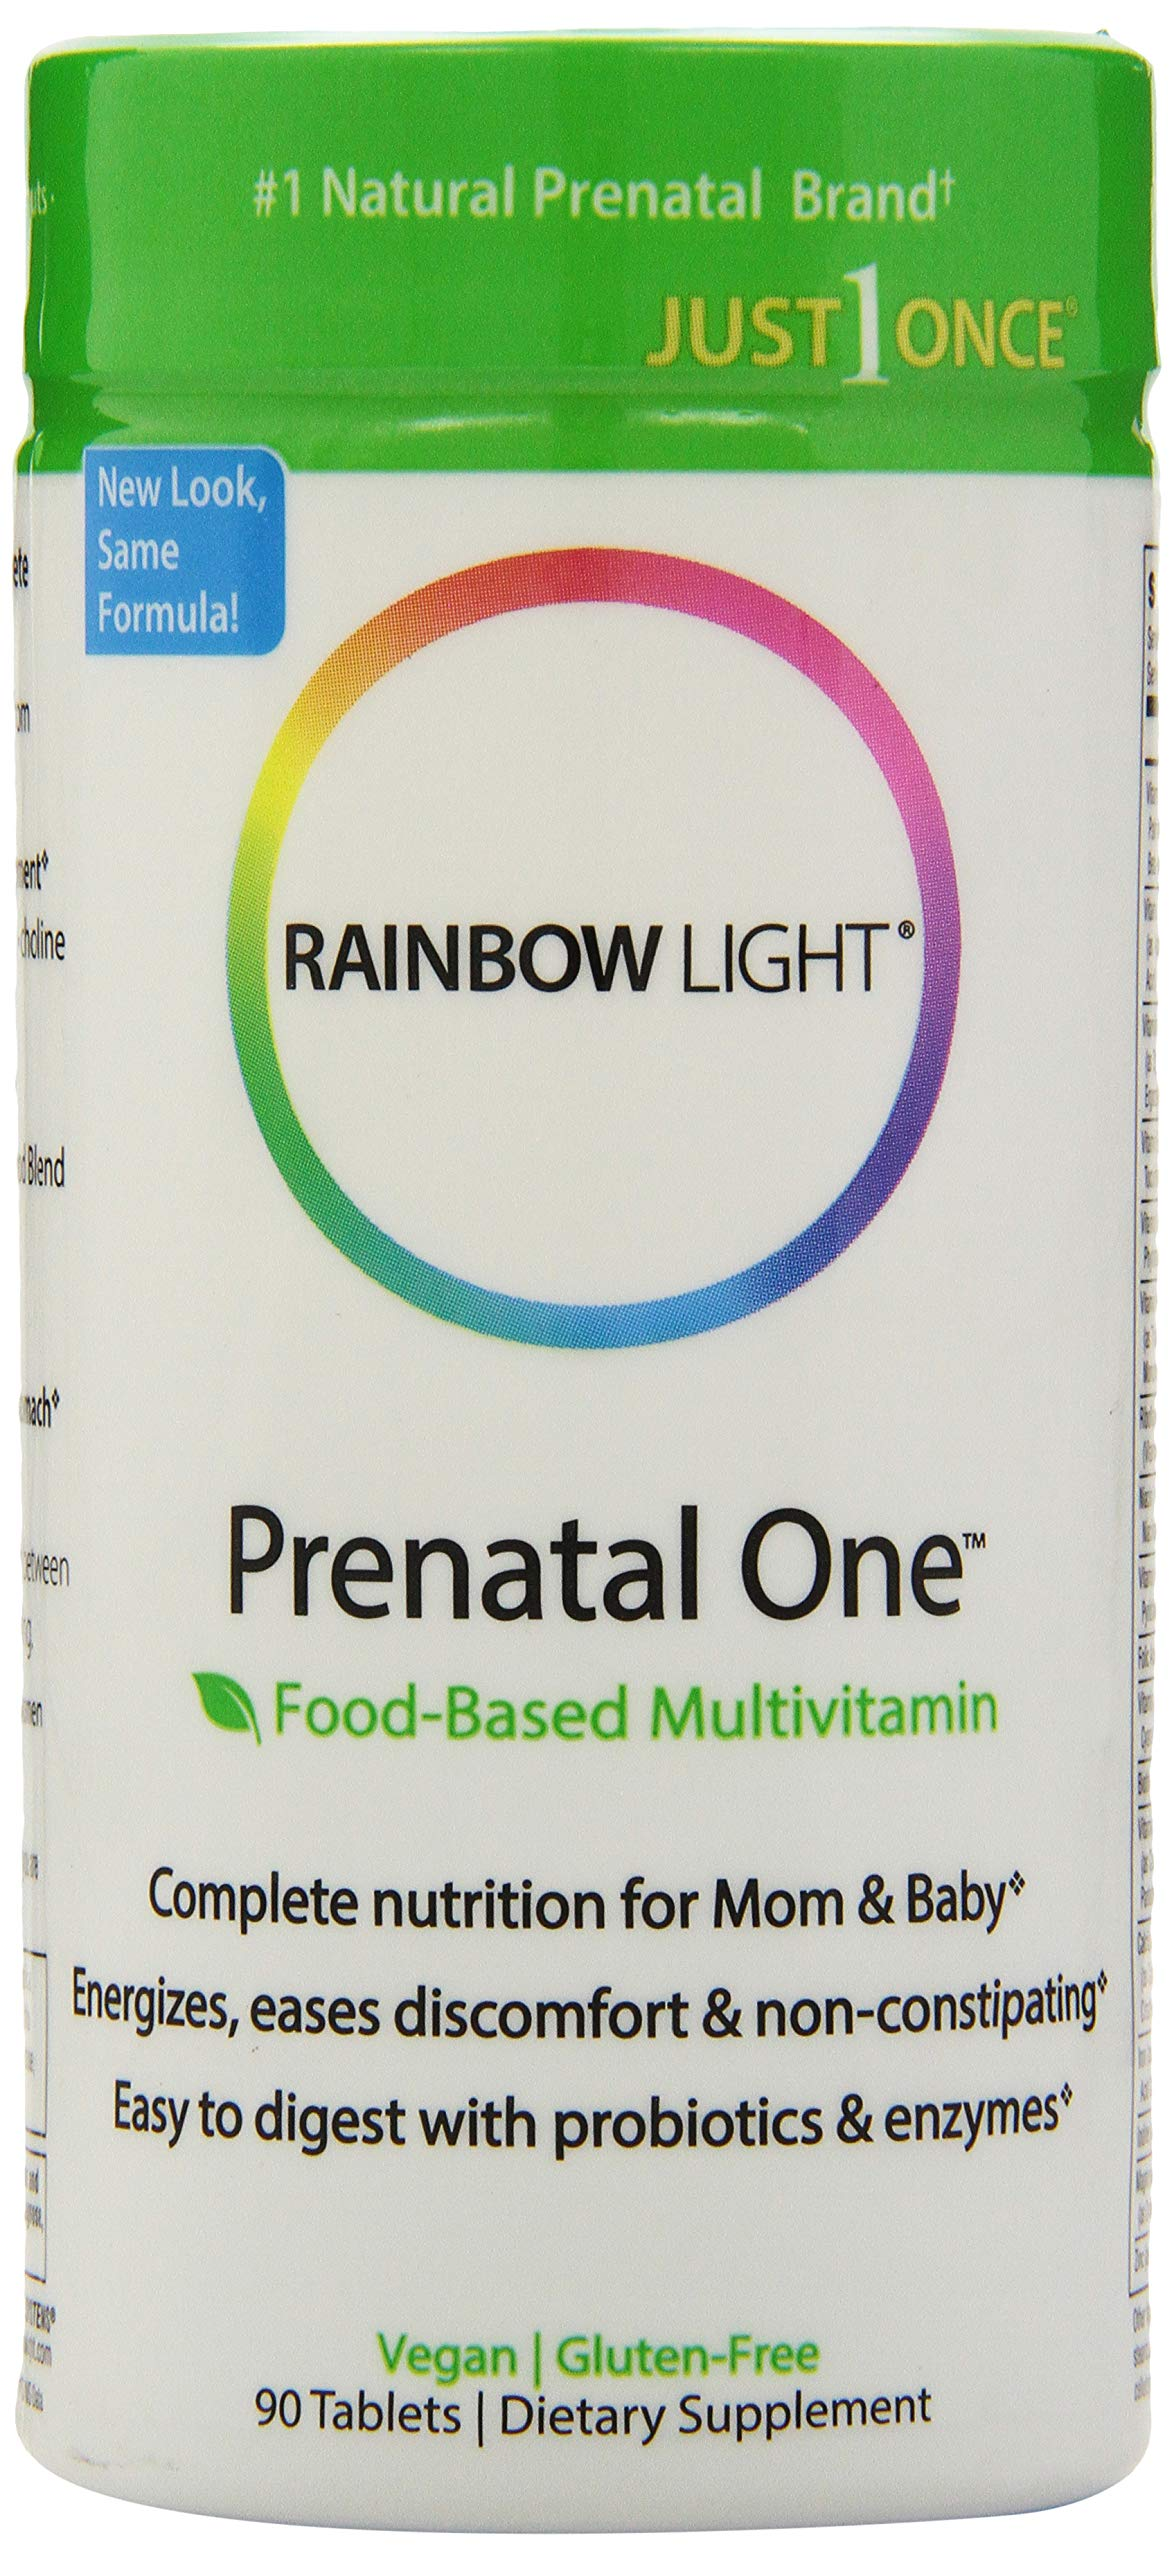 Rainbow Light - Prenatal One Multivitamin, Once Daily to Support Energy and Immunity for Mother and Development for Baby with Folic Acid, Iron and Probiotics, Vegetarian, Gluten-Free, 90 Tablets